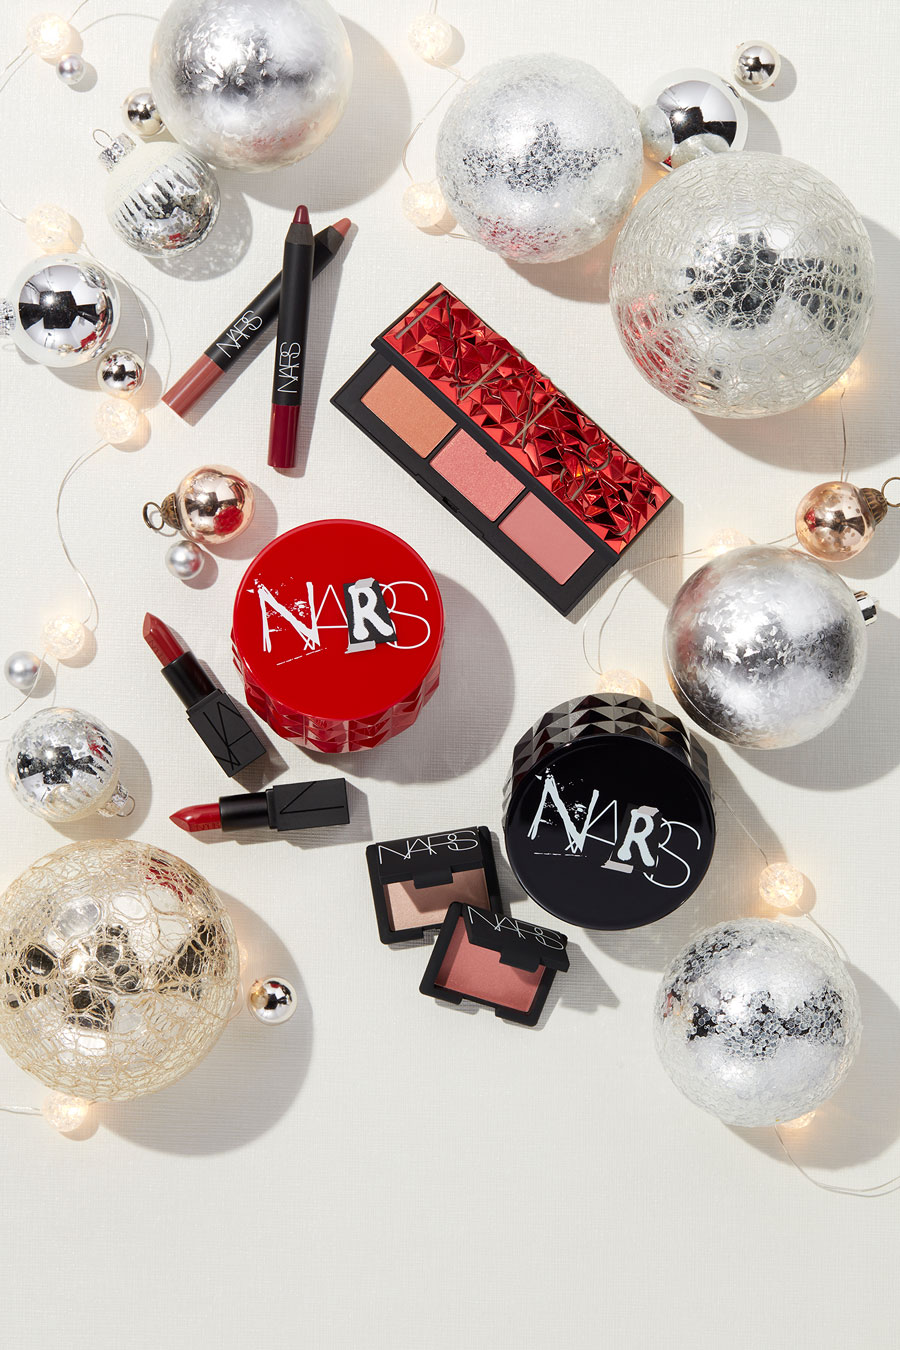 Tyllie_Barbosa_Ulta_Holiday_2018_Nars_Ball_Lights.jpg